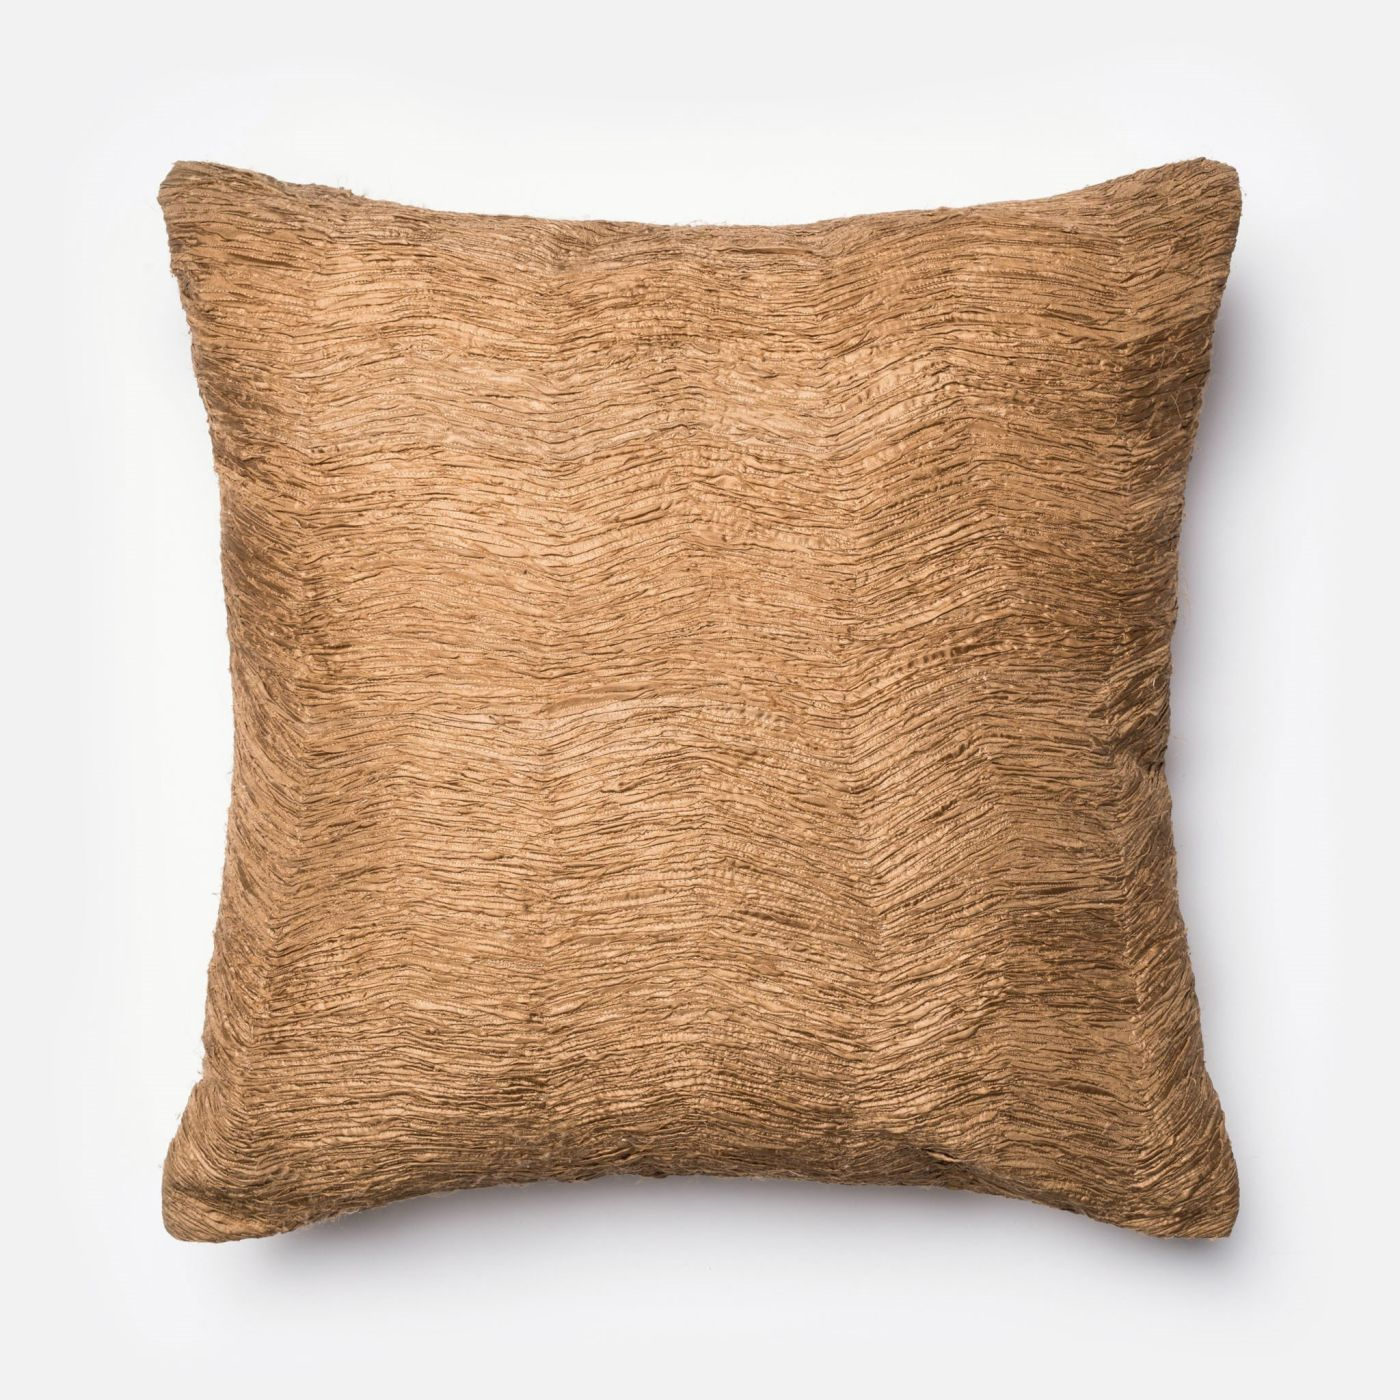 Throw Pillow Warehouse : Loloi Rugs Loloi Gold Decorative Throw Pillow (P0030) PSETP0030GO00PIL3. Only $89.00 at ...